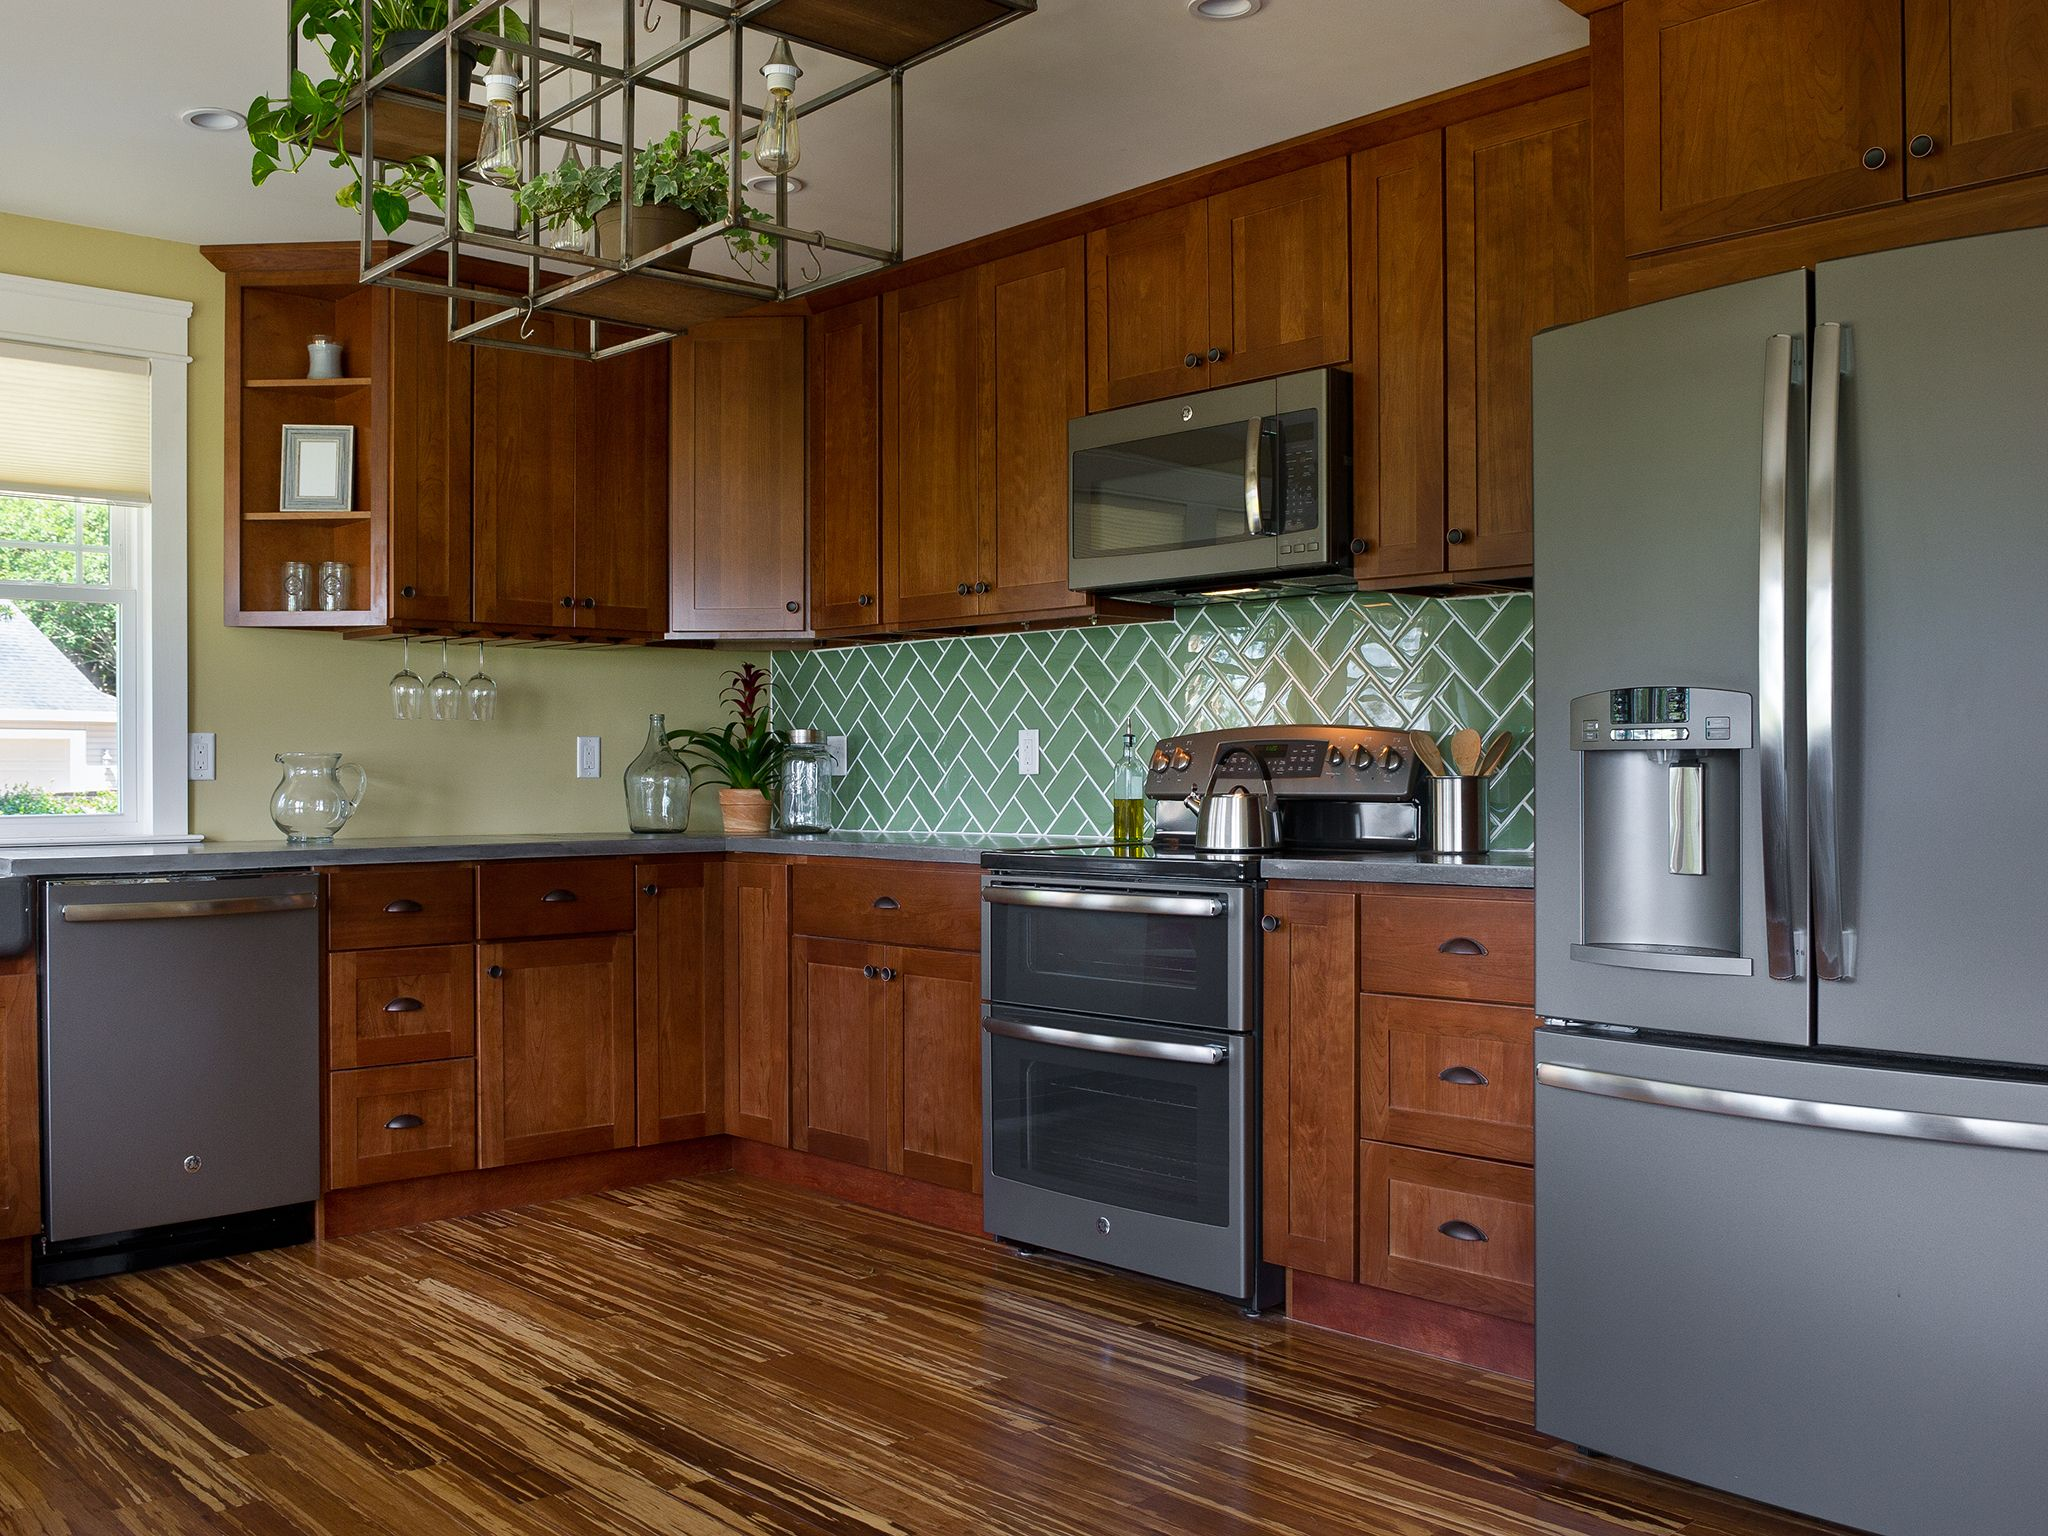 Uncategorized Myers Kitchen Appliances kitchen showcasing findley myers montauk cherry cabinets in diy networks blogcabin 2014